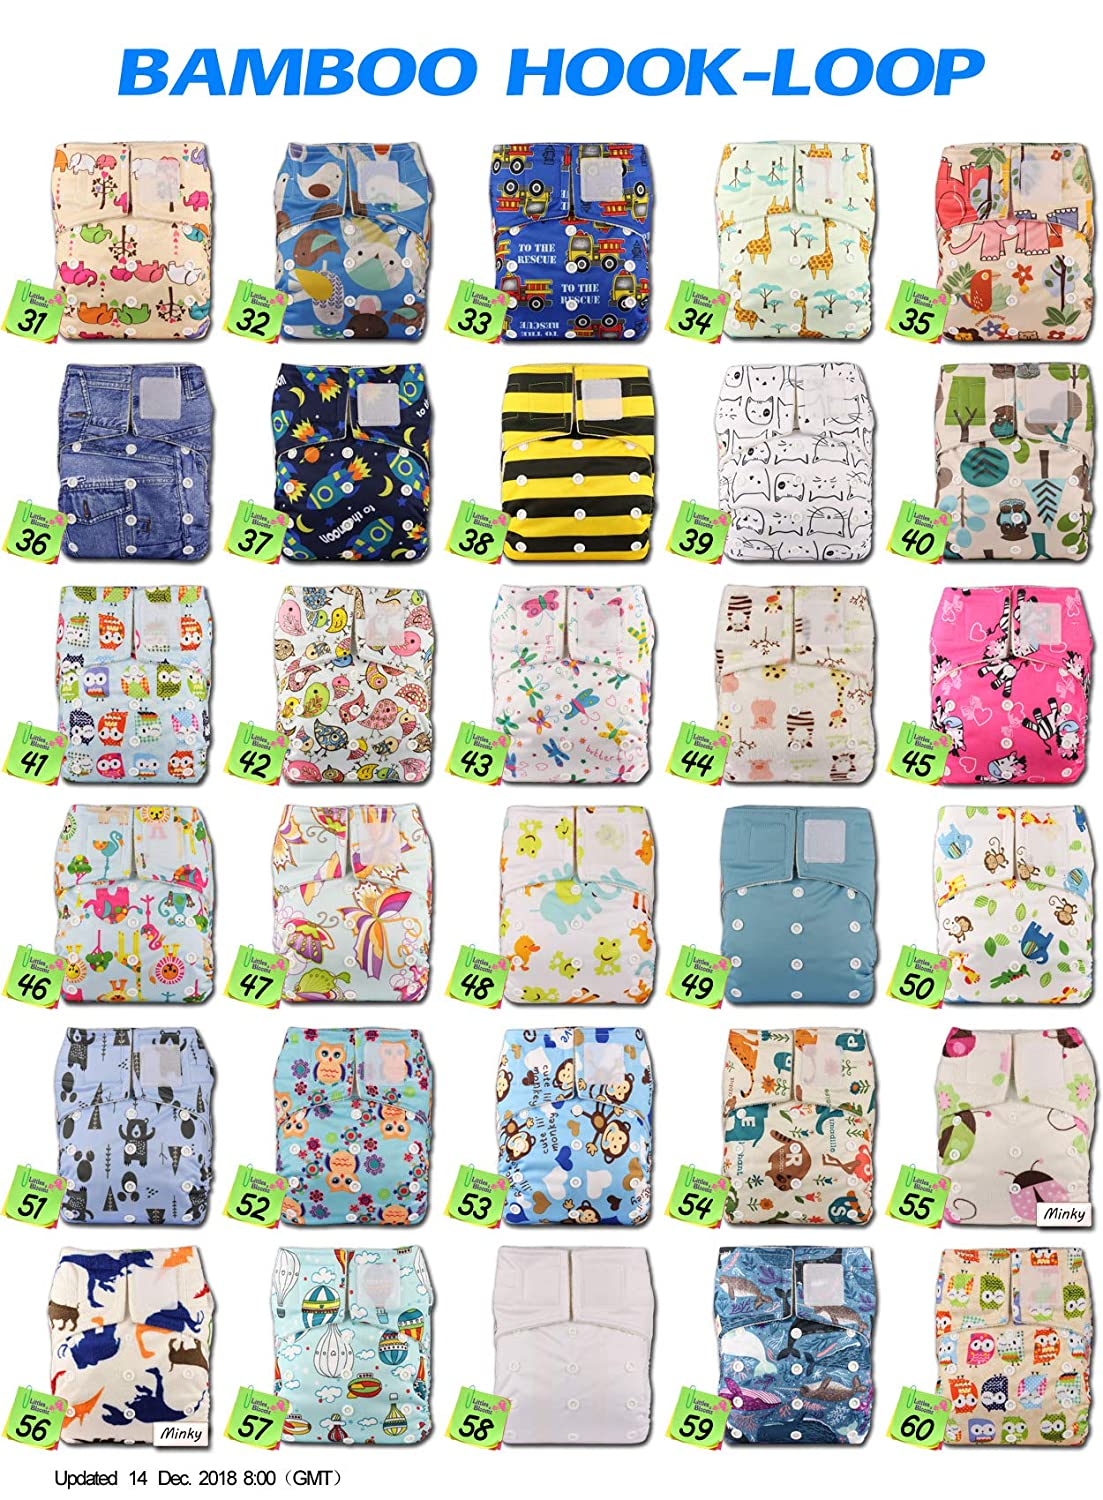 Baby Cloth Washable Reusable Nappy Pocket Diaper Bamboo Littles /& Bloomz with 2 Bamboo Charcoal Inserts Fastener: Hook-Loop Pattern 53